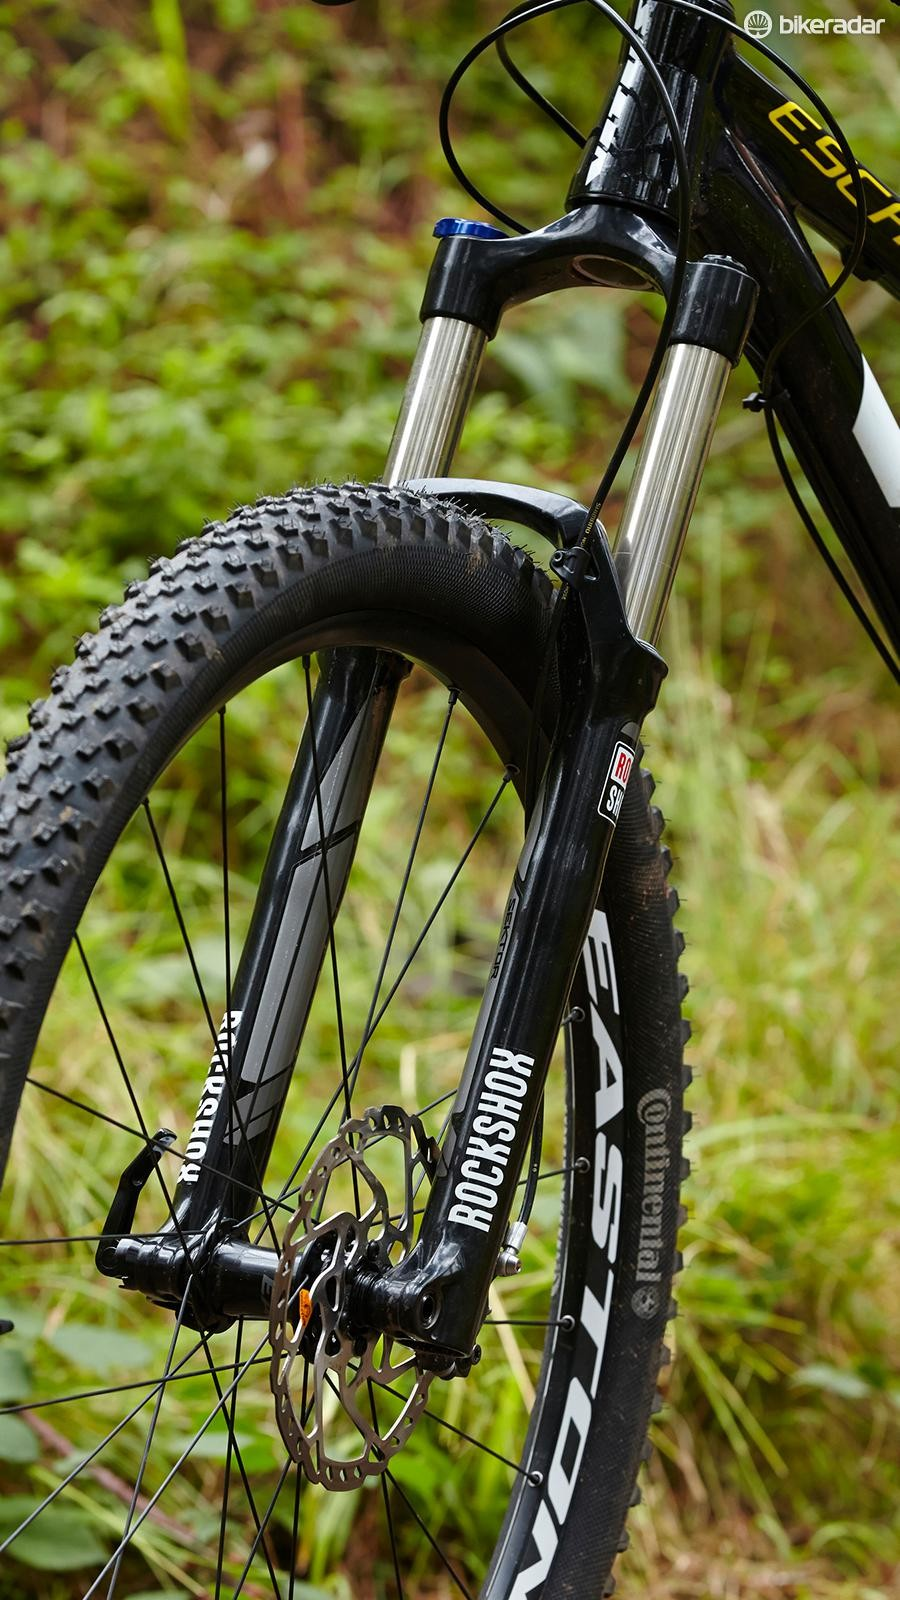 The RockShox Sektor fork in 140mm 29er spec is too flexy to perform well when things get rough